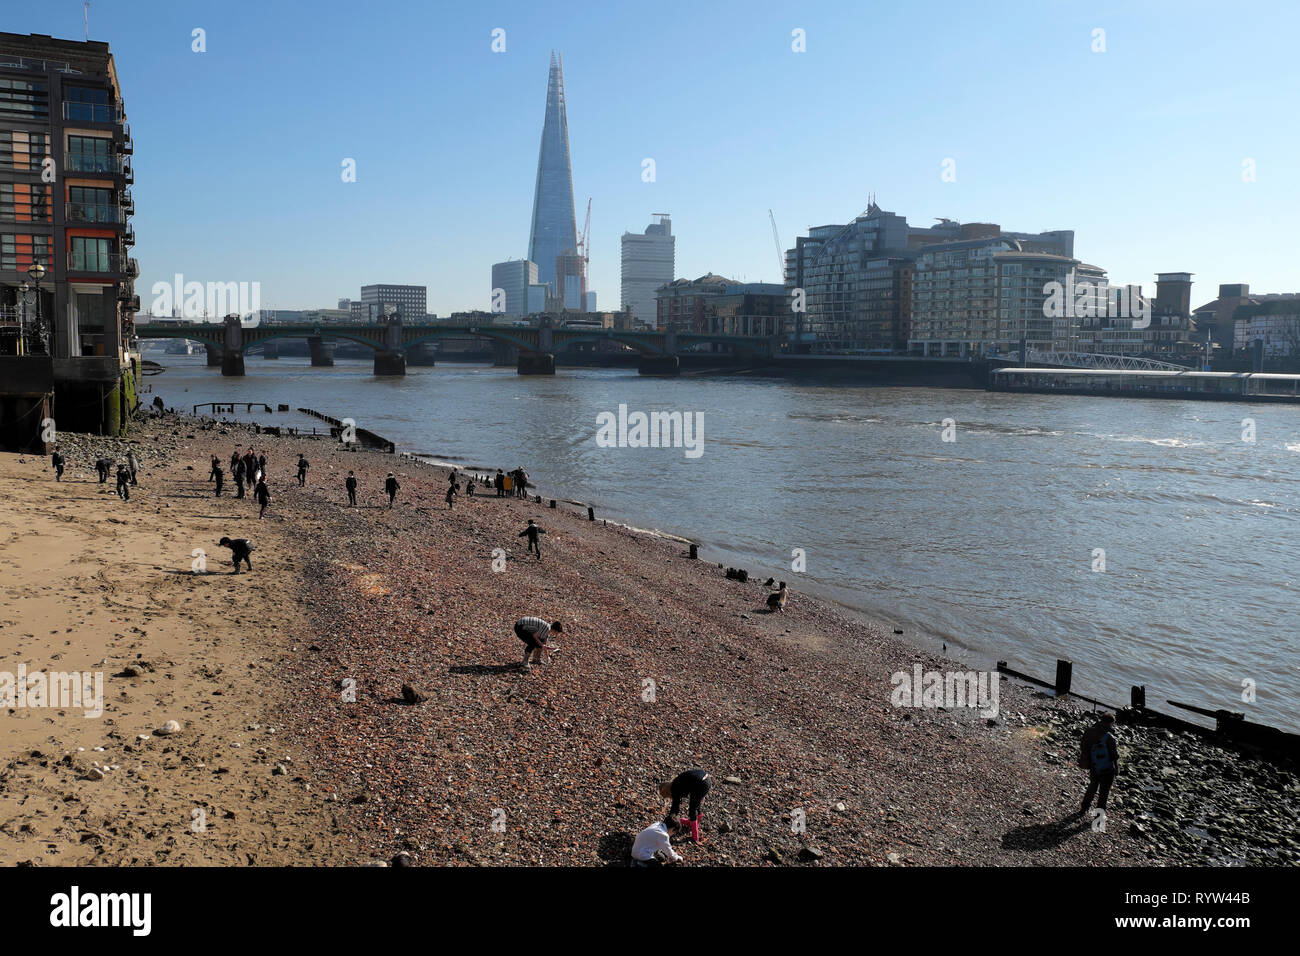 View of River Thames at low tide, Shard building, people mudlarking near Queenhithe and Southwark Bridge in London EC4 England UK  KATHY DEWITT Stock Photo